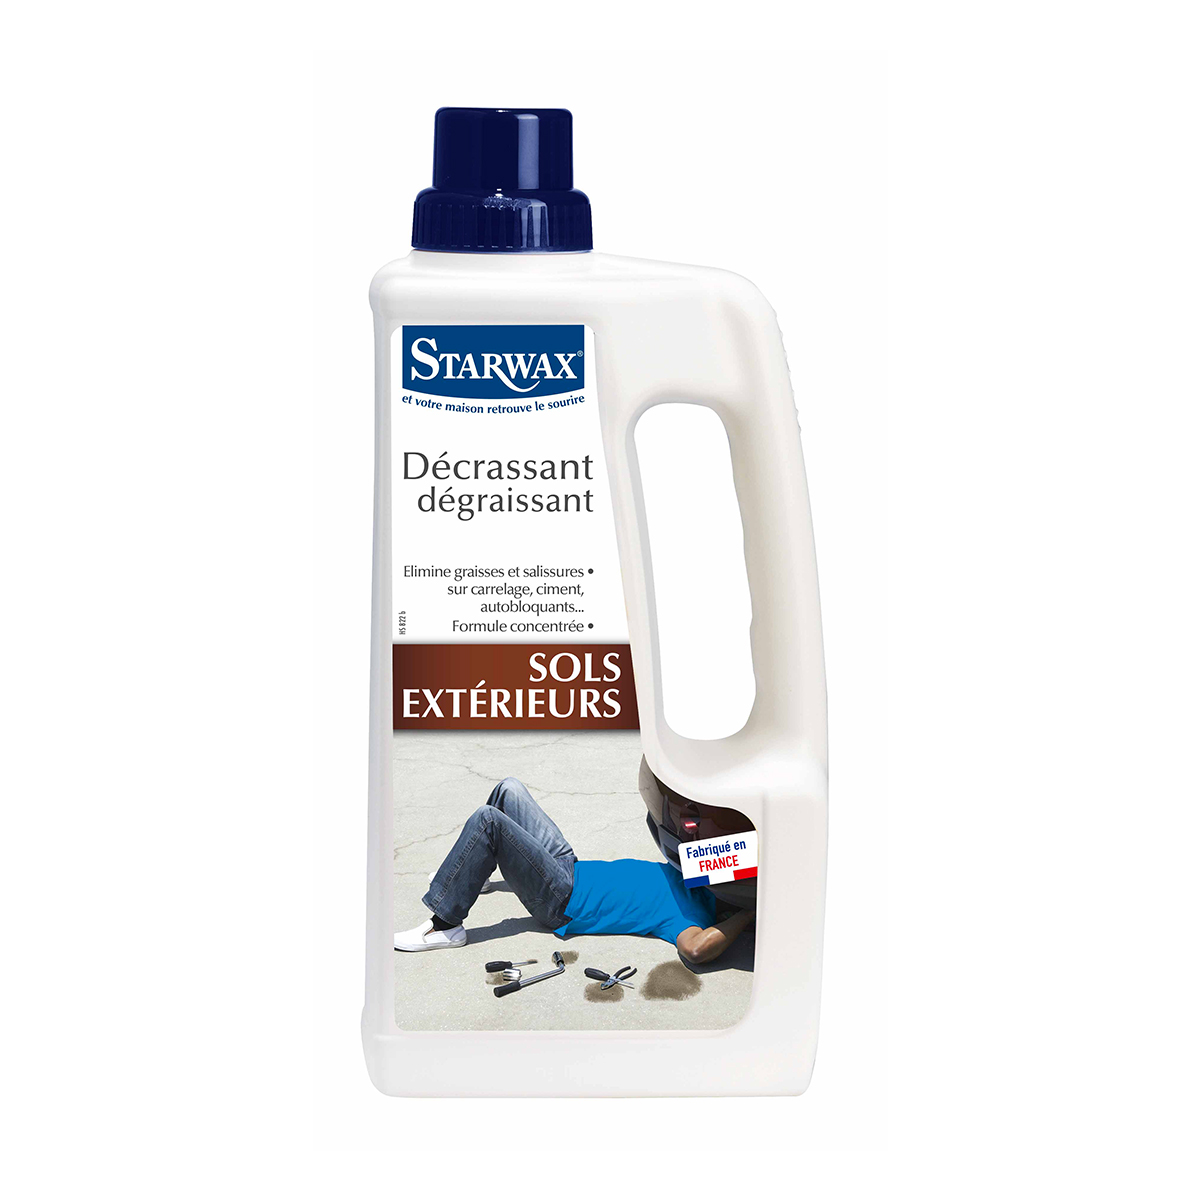 Patio cleaner – Starwax